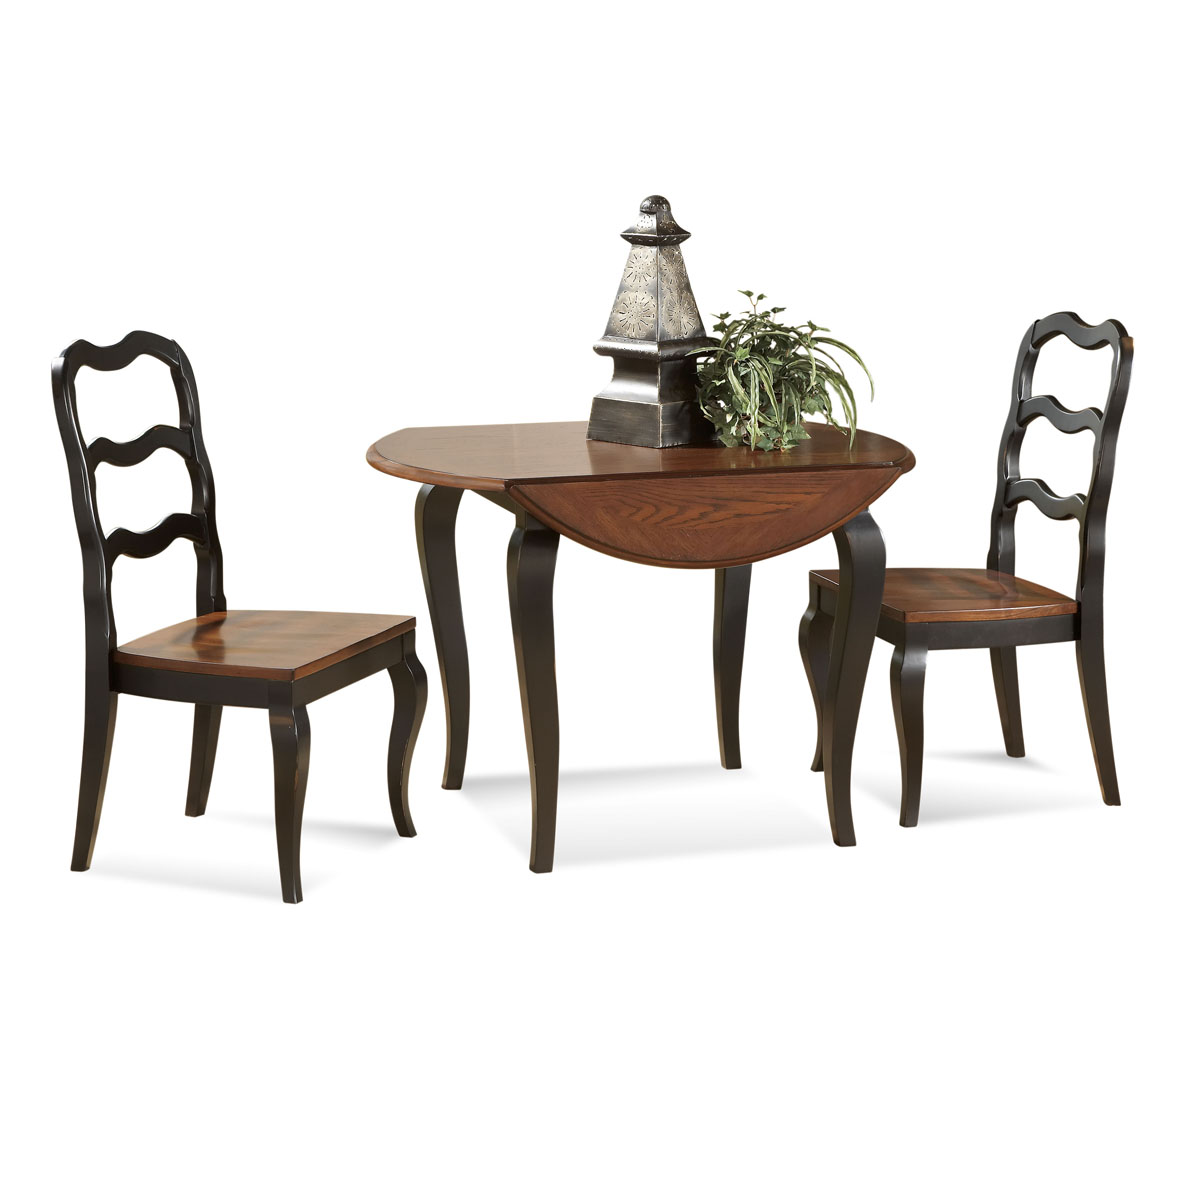 5 styles of drop leaf dining table for small spaces for Small dining table with leaf